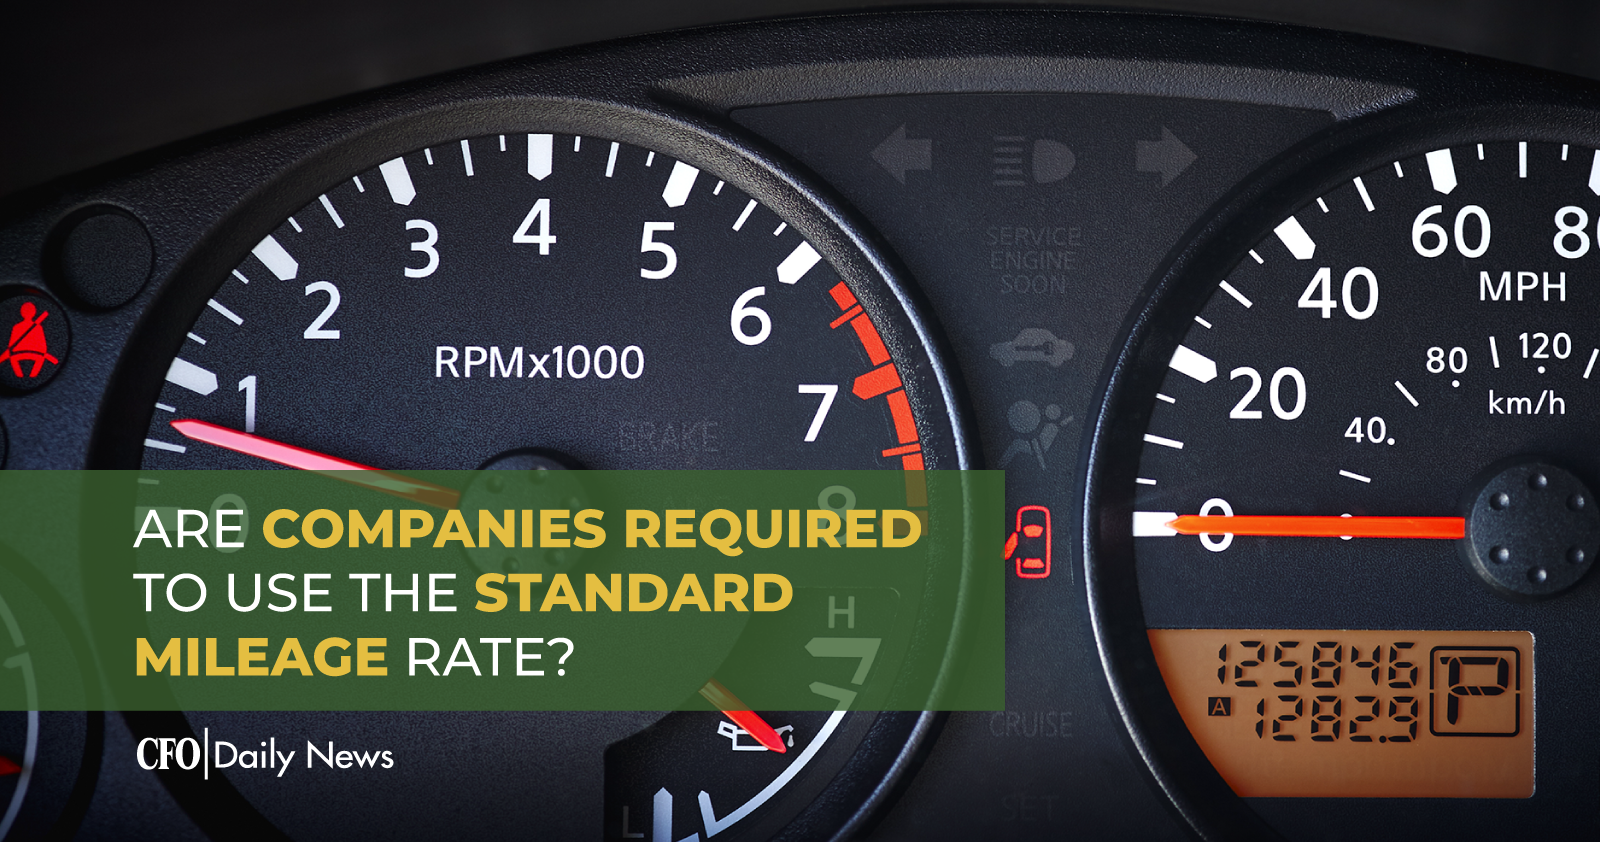 are companies required to use the standard mileage rate